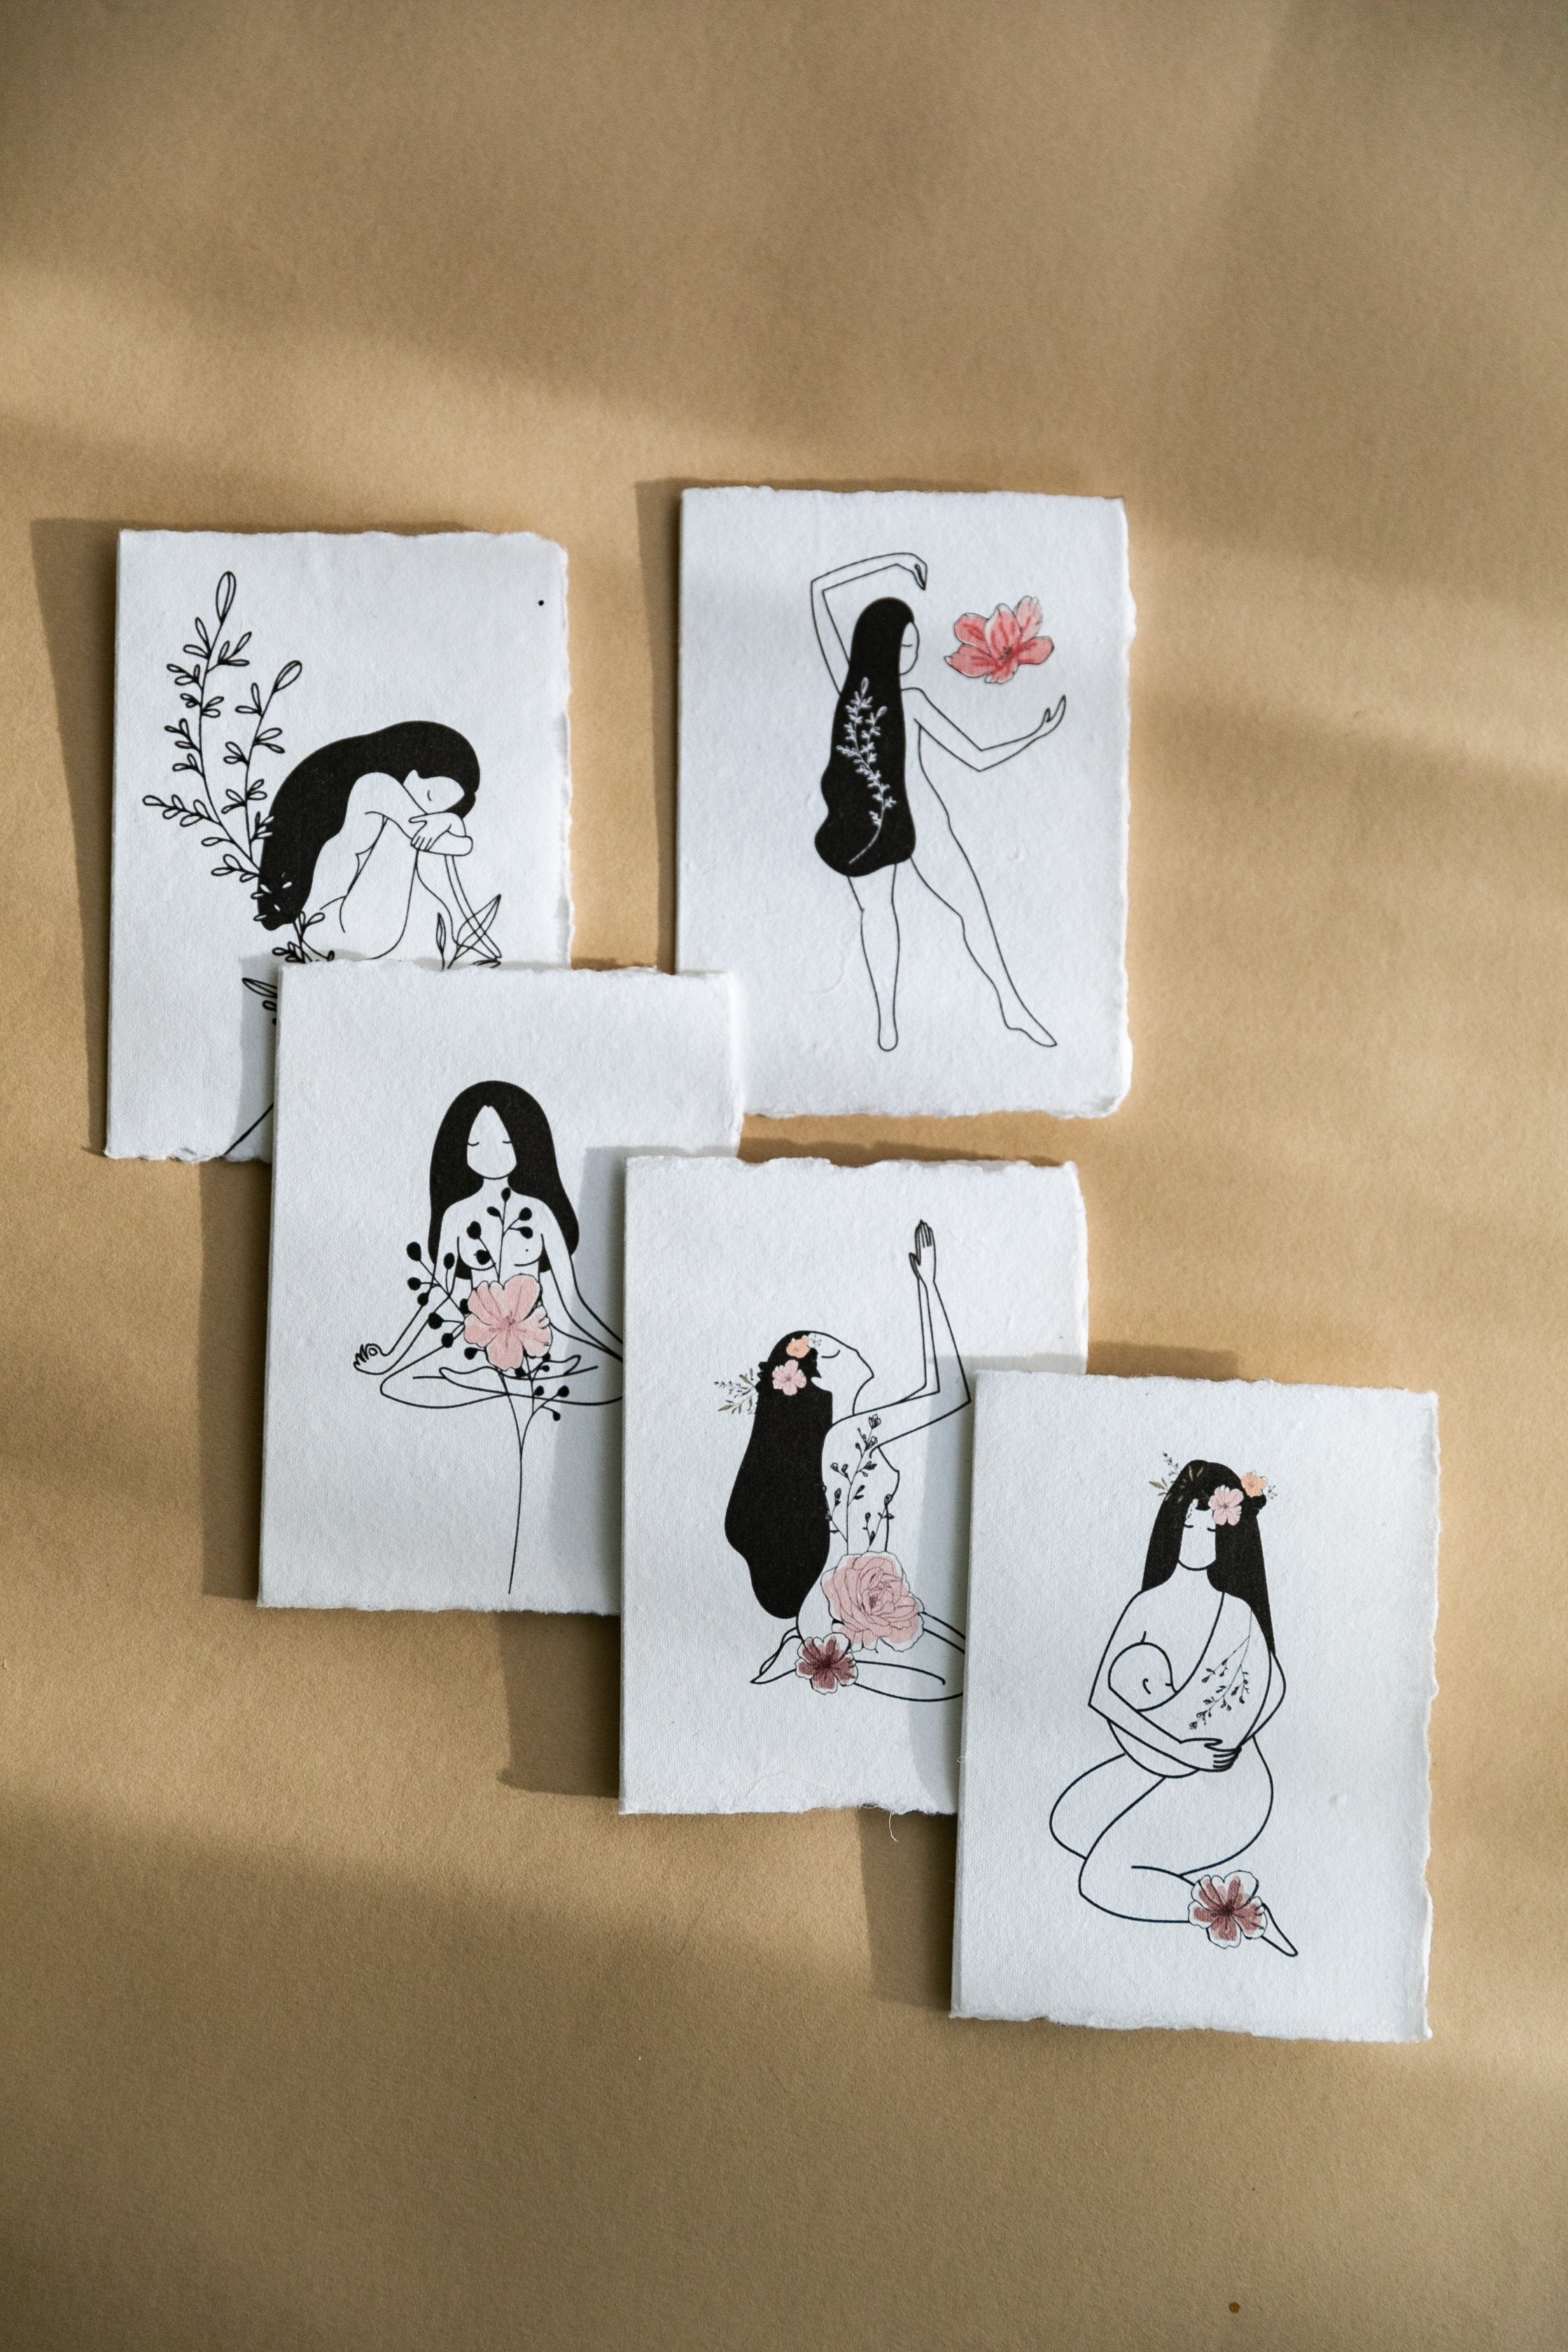 Nature Goddess Gift Cards on Handmade Cotton Rag Paper - Feathers and Stone